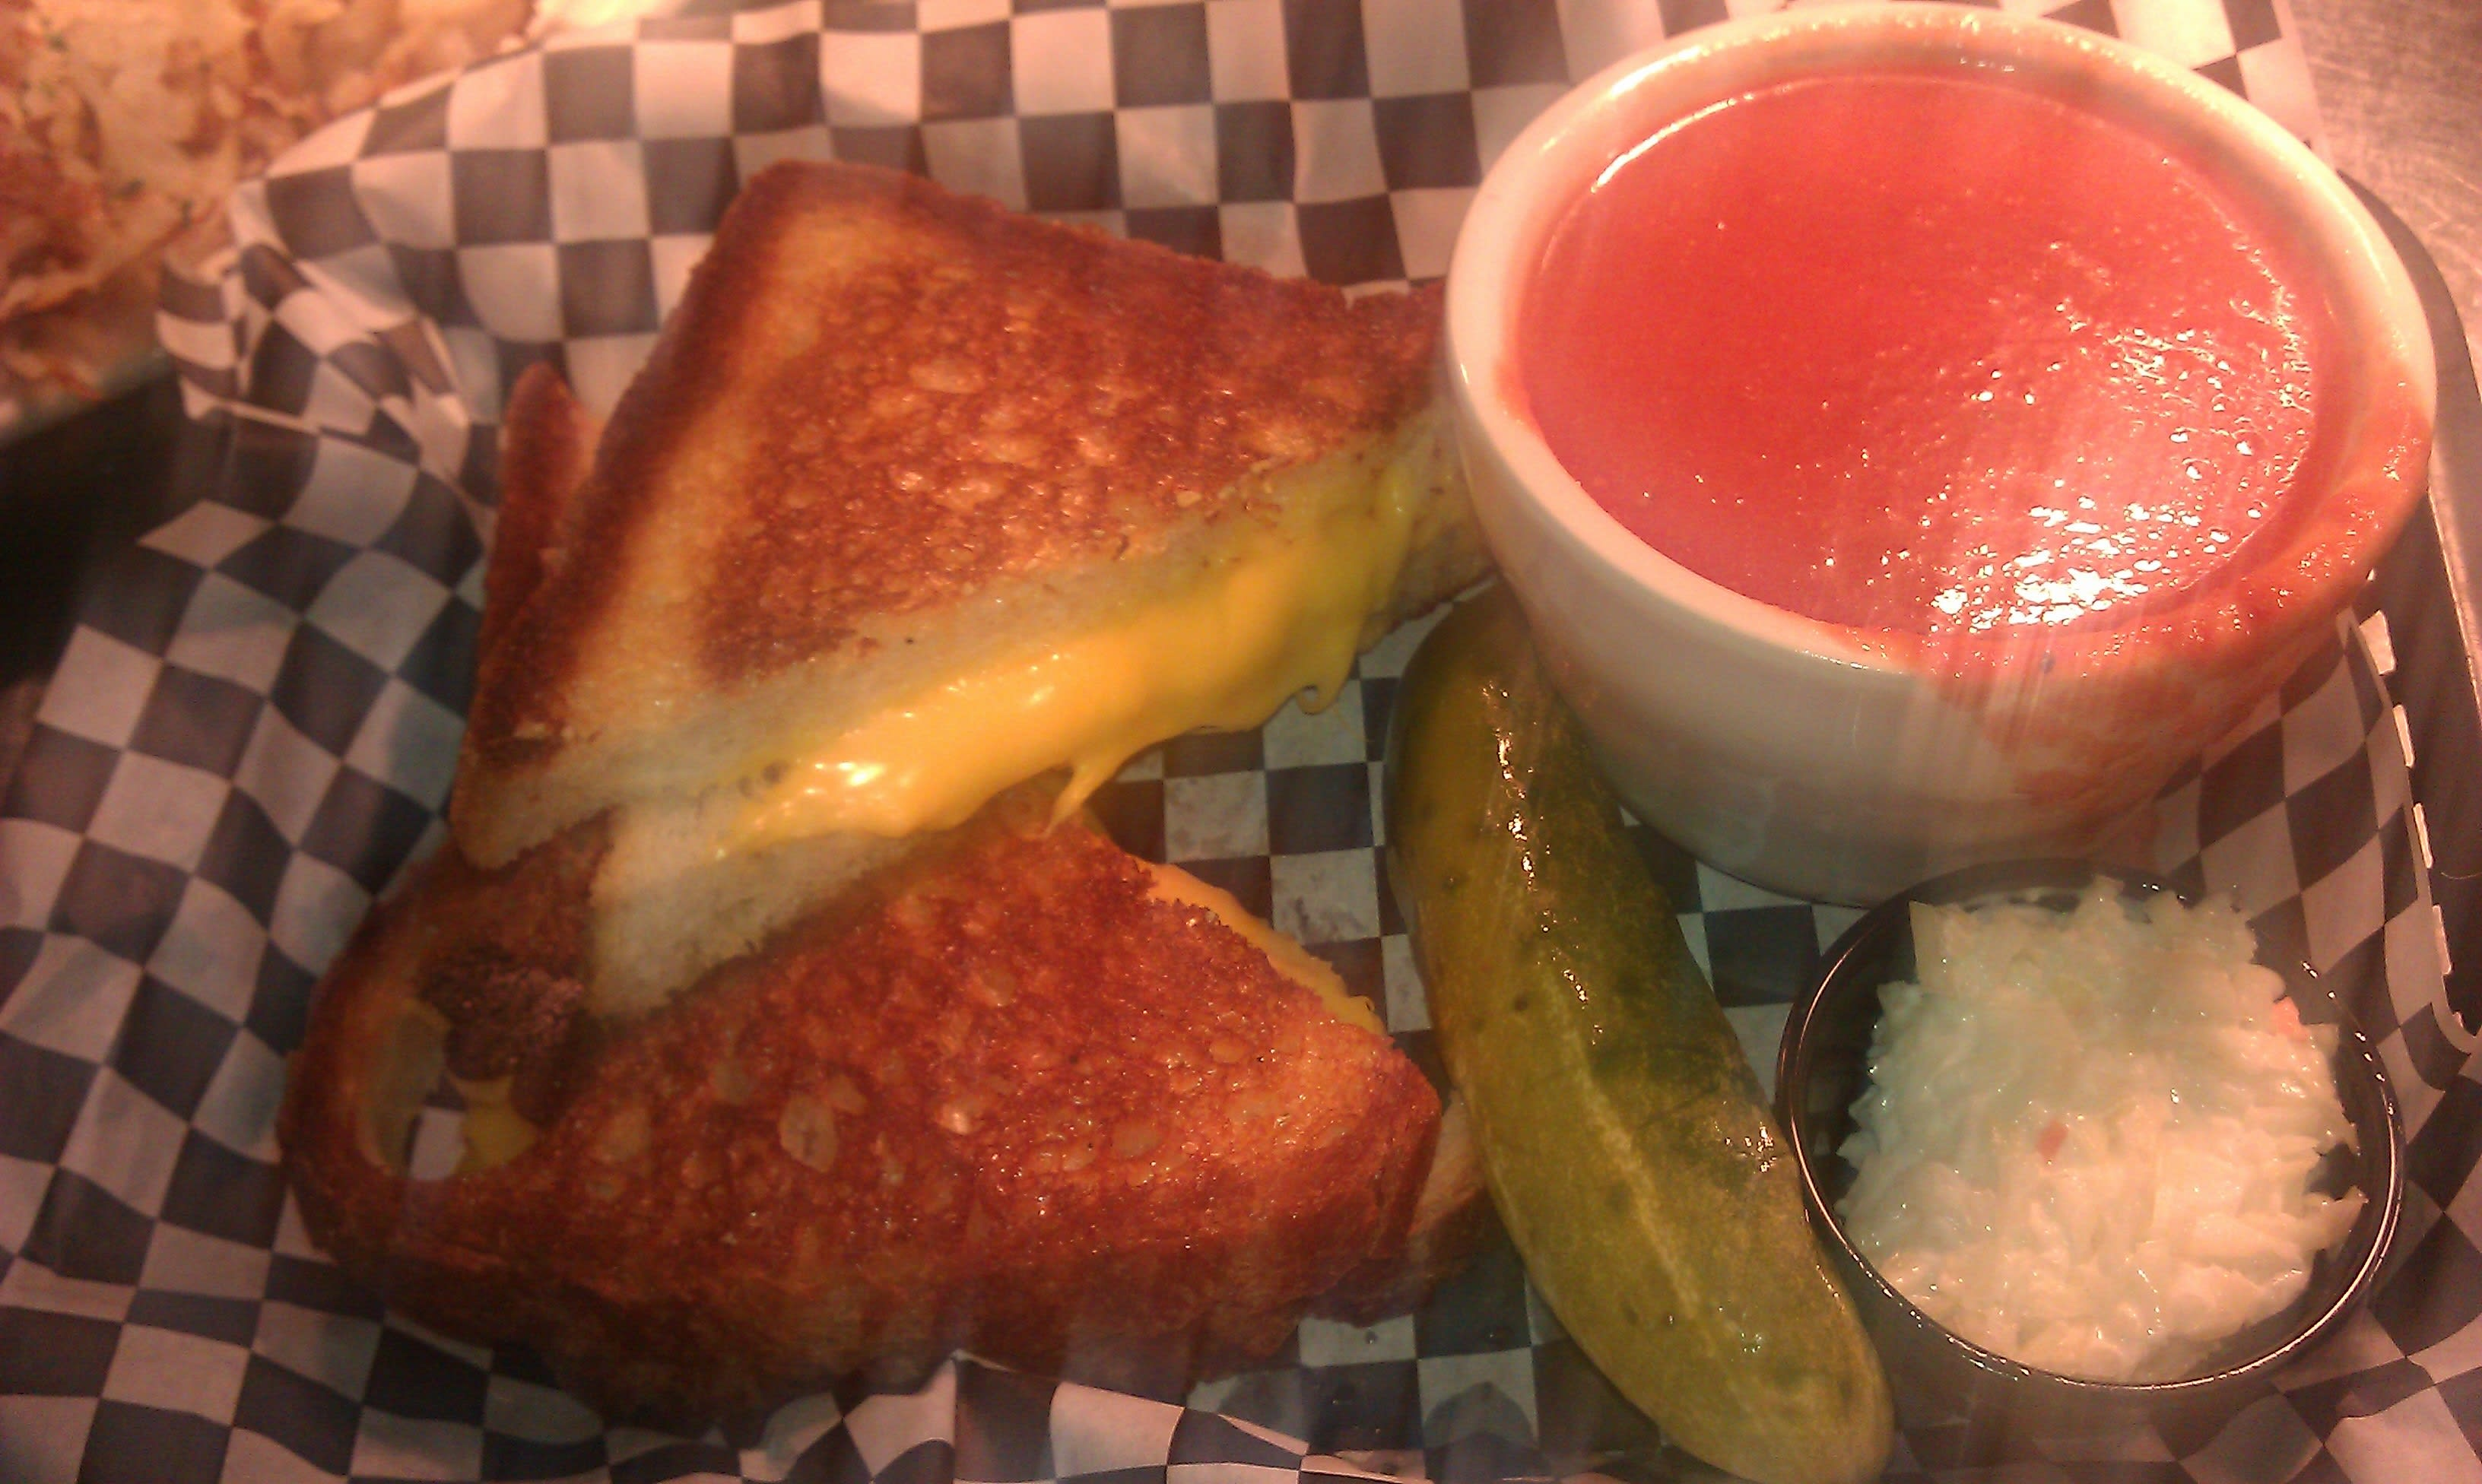 Grilled Cheese and Tomato Soup  at The Pop Shop